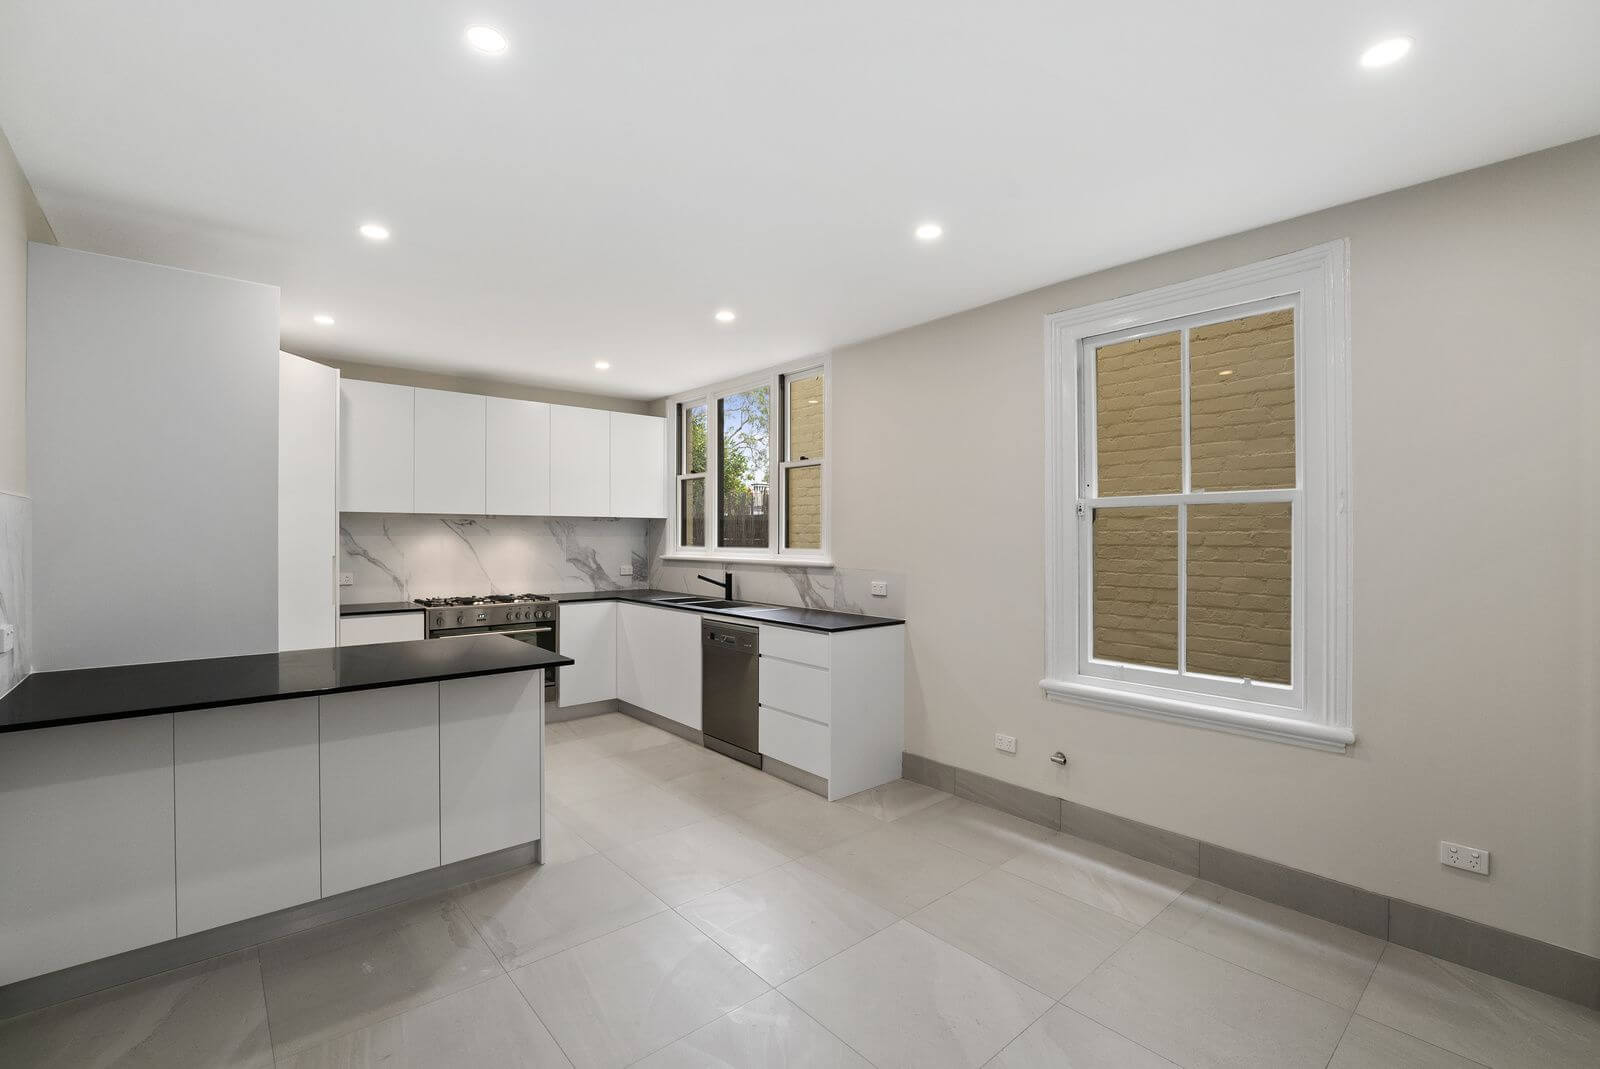 5 Boyce Street - Kitchen